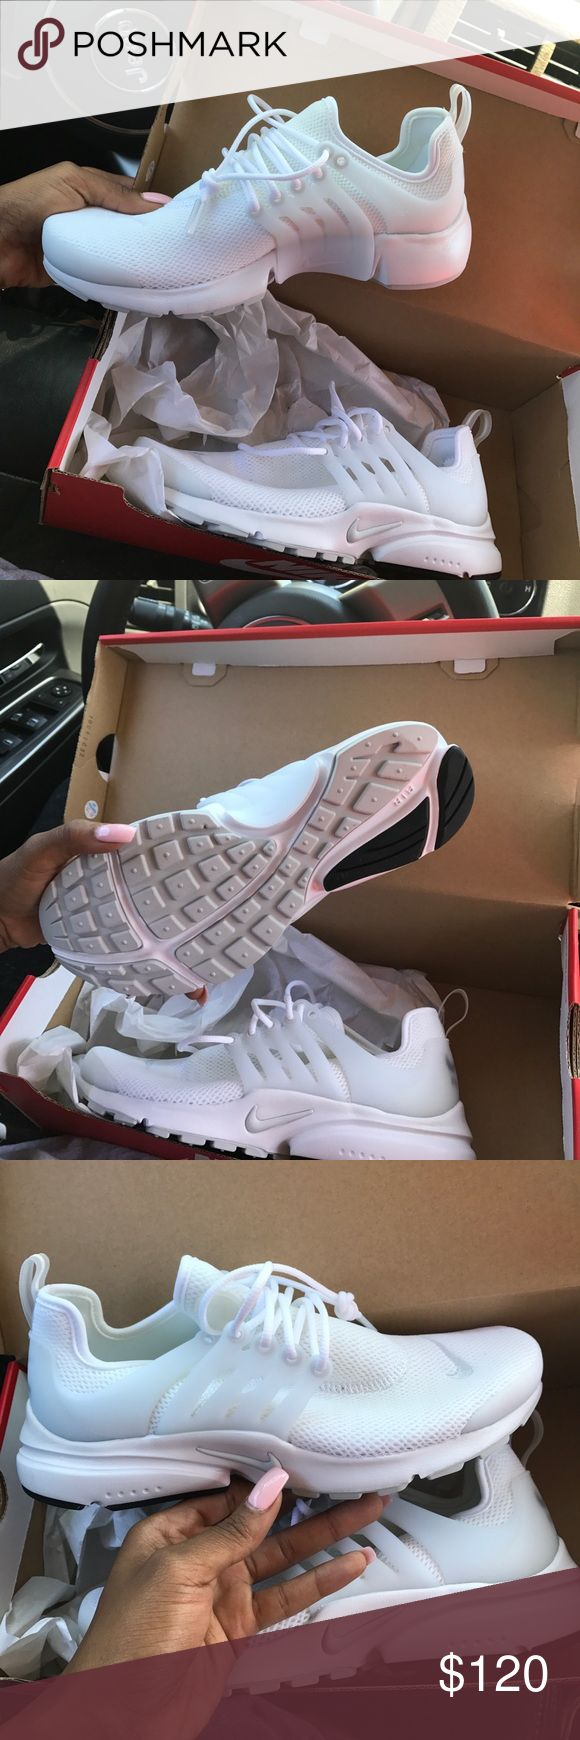 All white Prestos Nike Never worn all white Nike prestos Nike Shoes Athletic Shoes